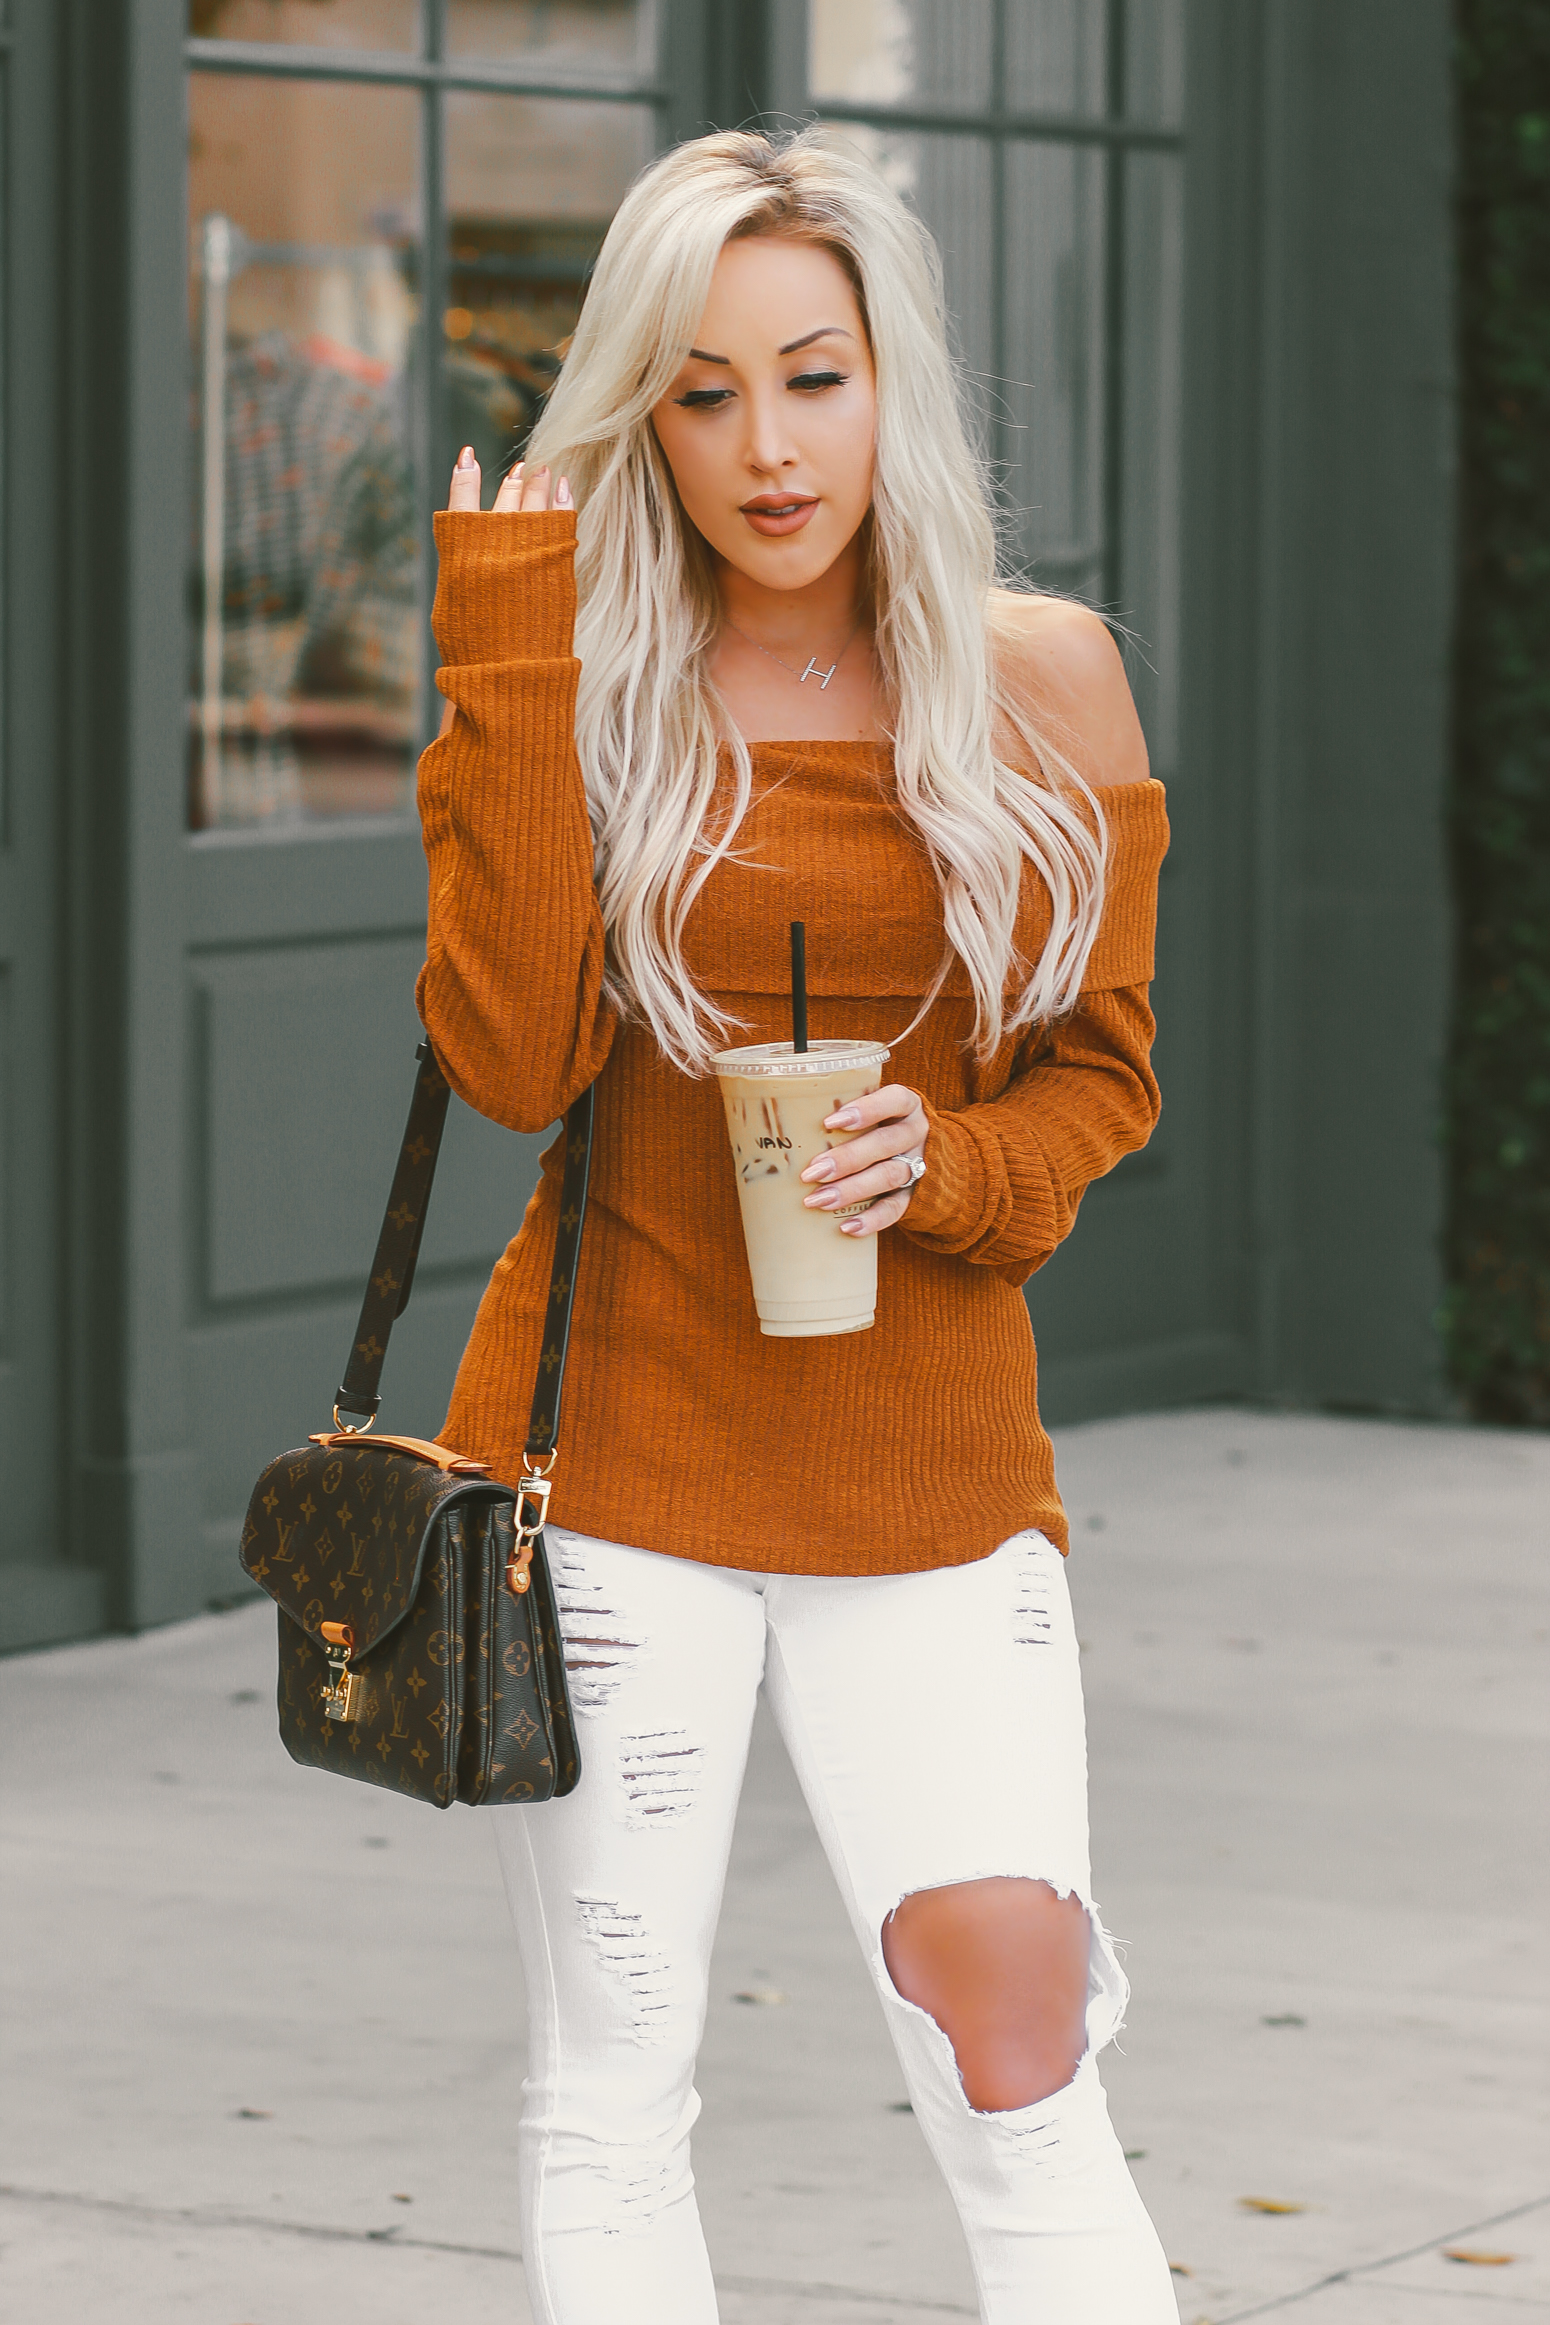 Blondie in the City | Thanksgiving Outfit Inspo